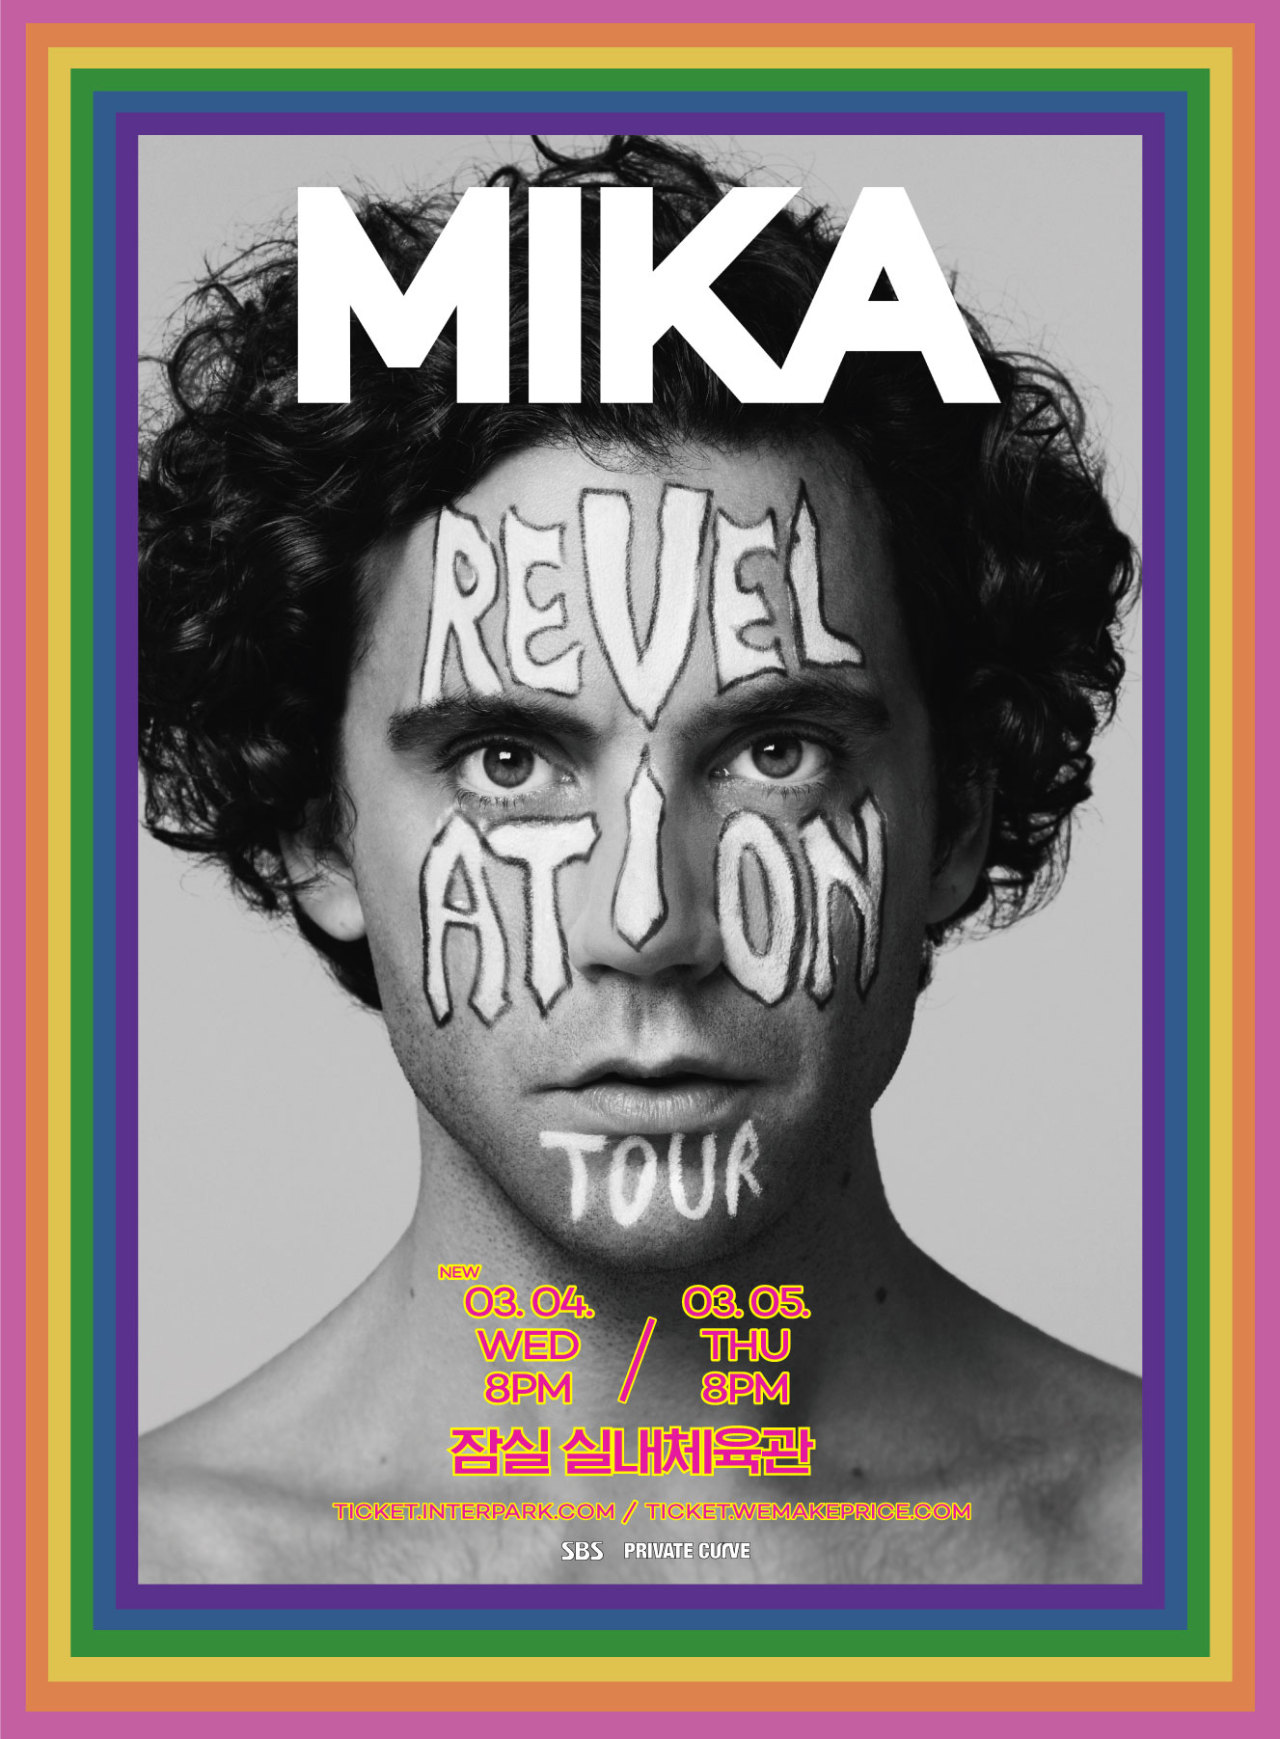 """Mika Revelation Tour"" poster (Private Curve)"